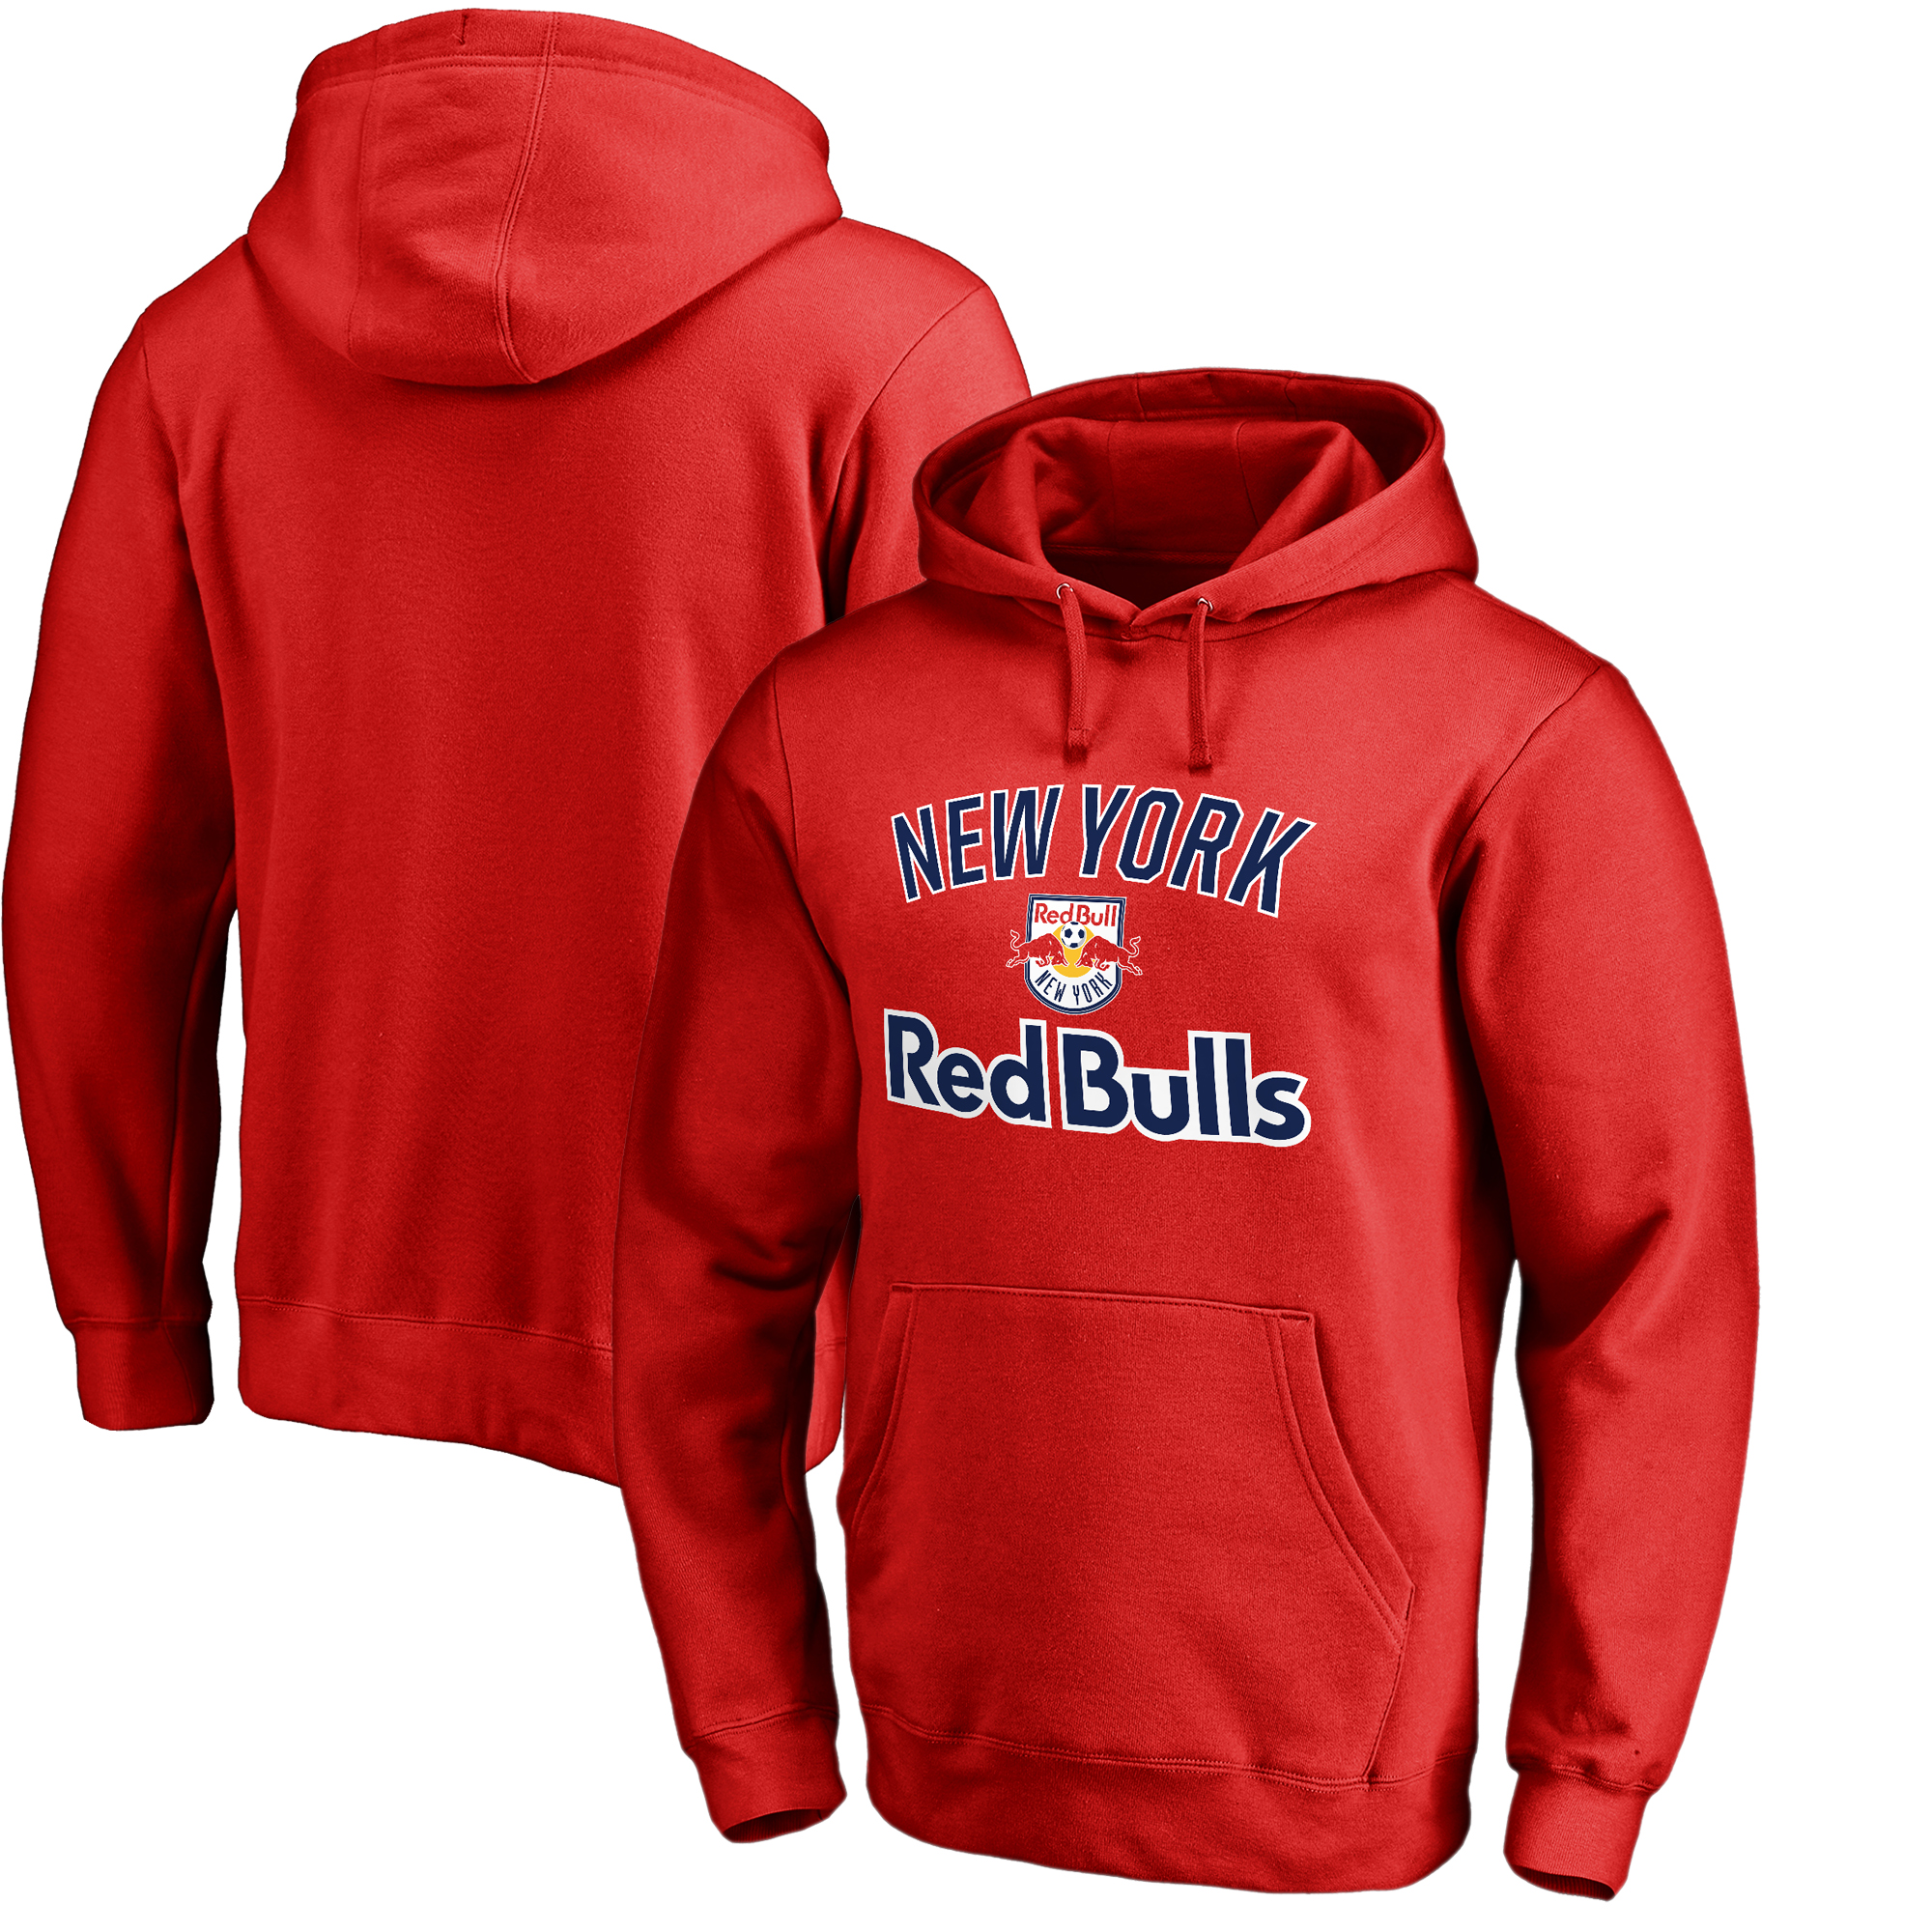 New York Red Bulls Fanatics Branded Victory Arch Pullover Hoodie - Red